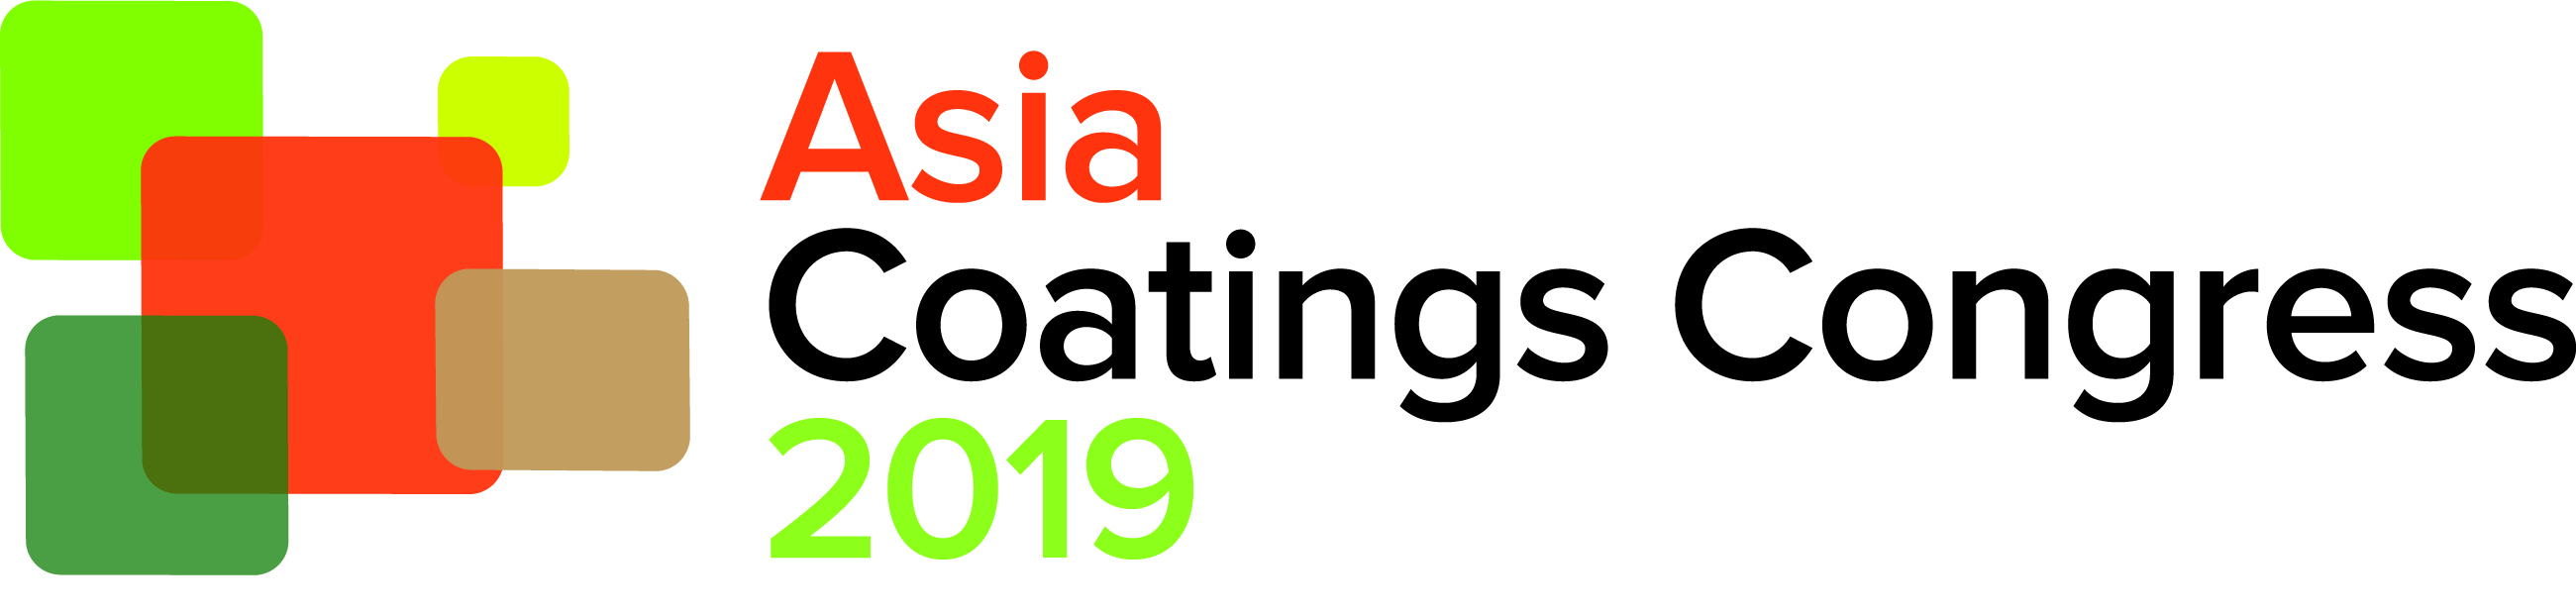 Asia Coatings Congress